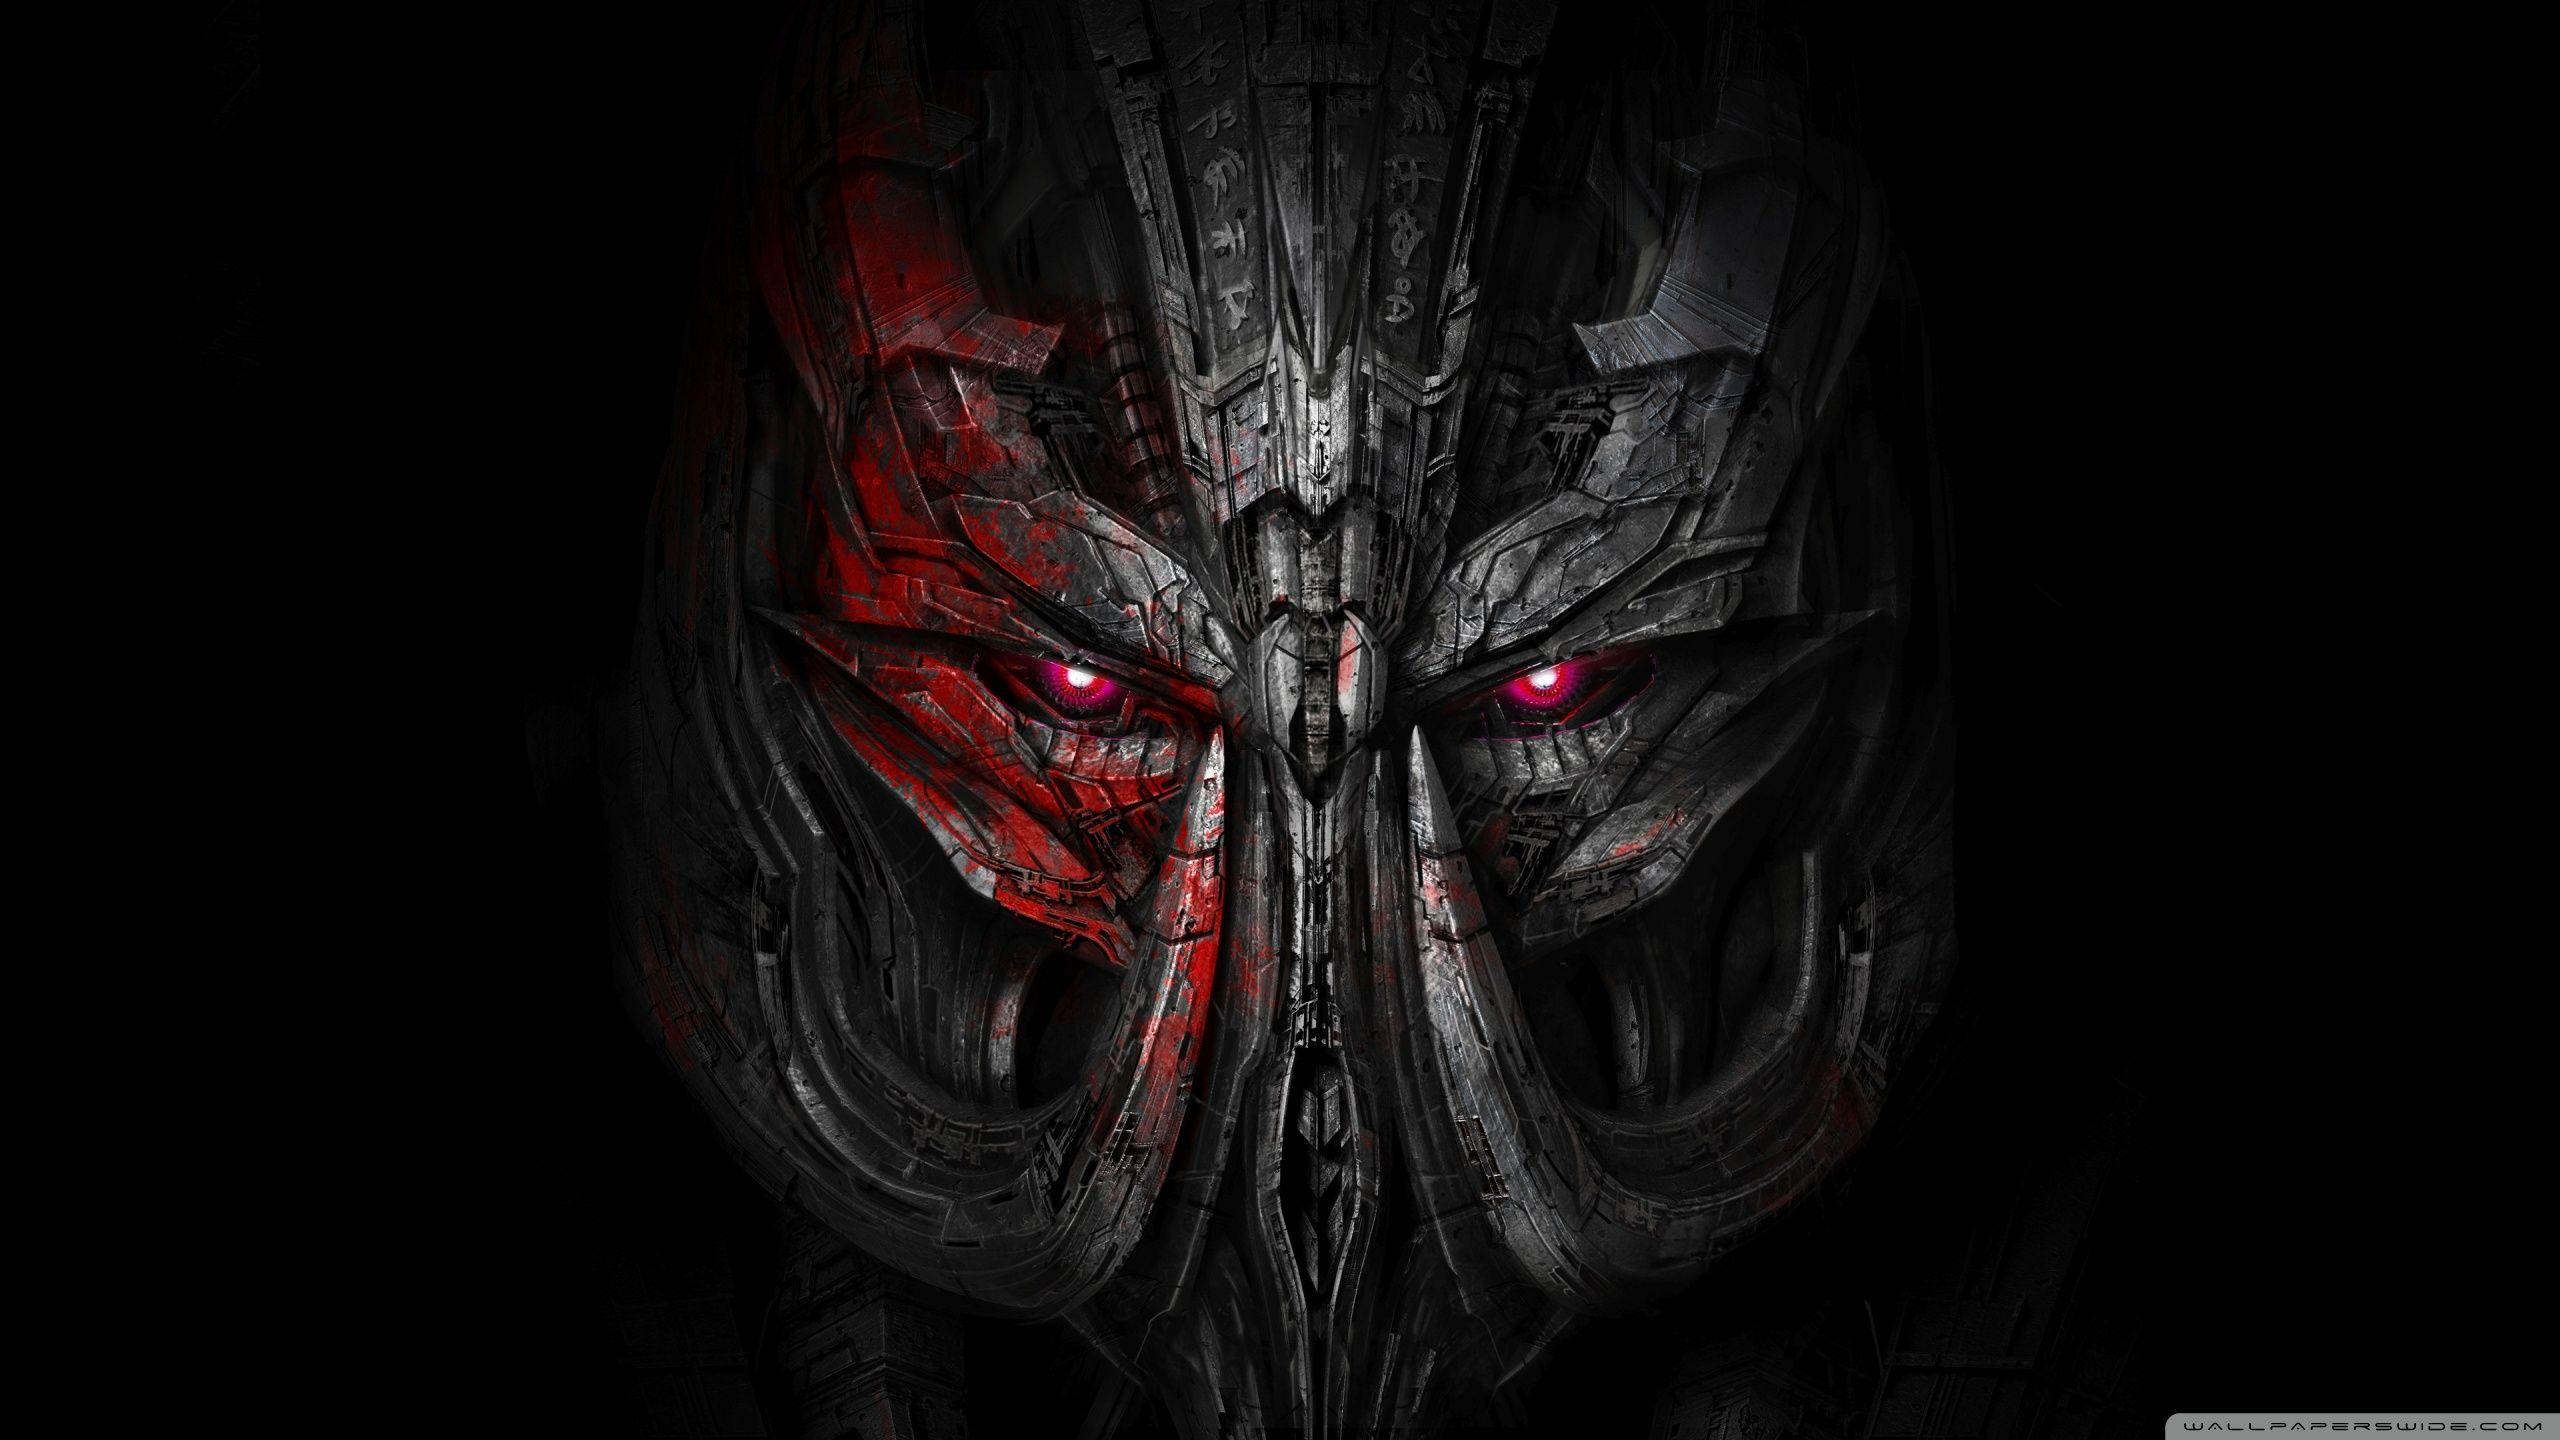 Megatron Transformers The Last Knight HD desktop wallpapers : High